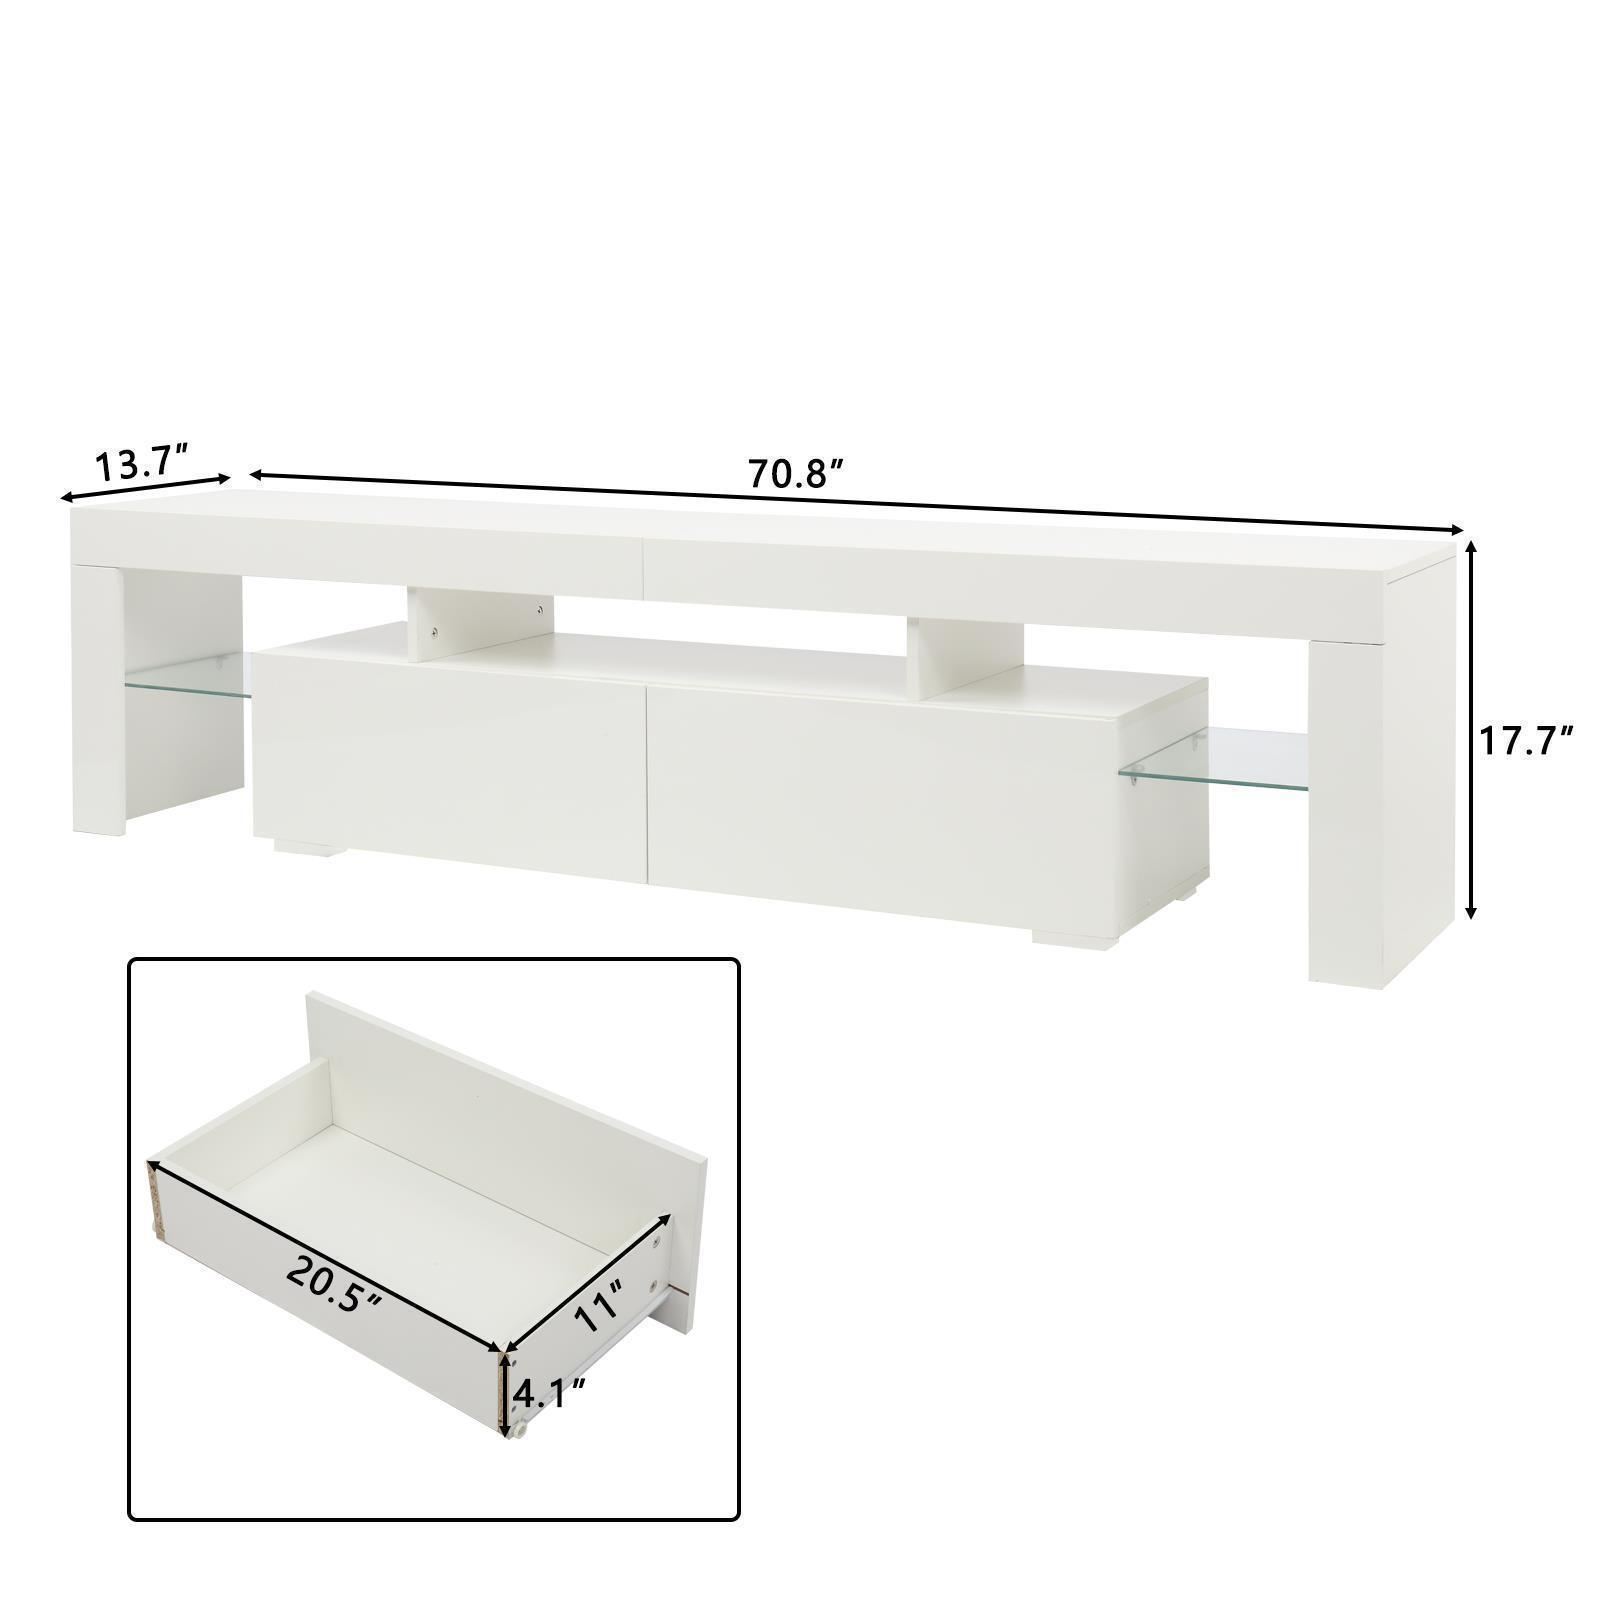 """thumbnail 14 - 51"""" Wood High Gloss LED TV Stand Entertainment Furniture Center Console Cabinet"""